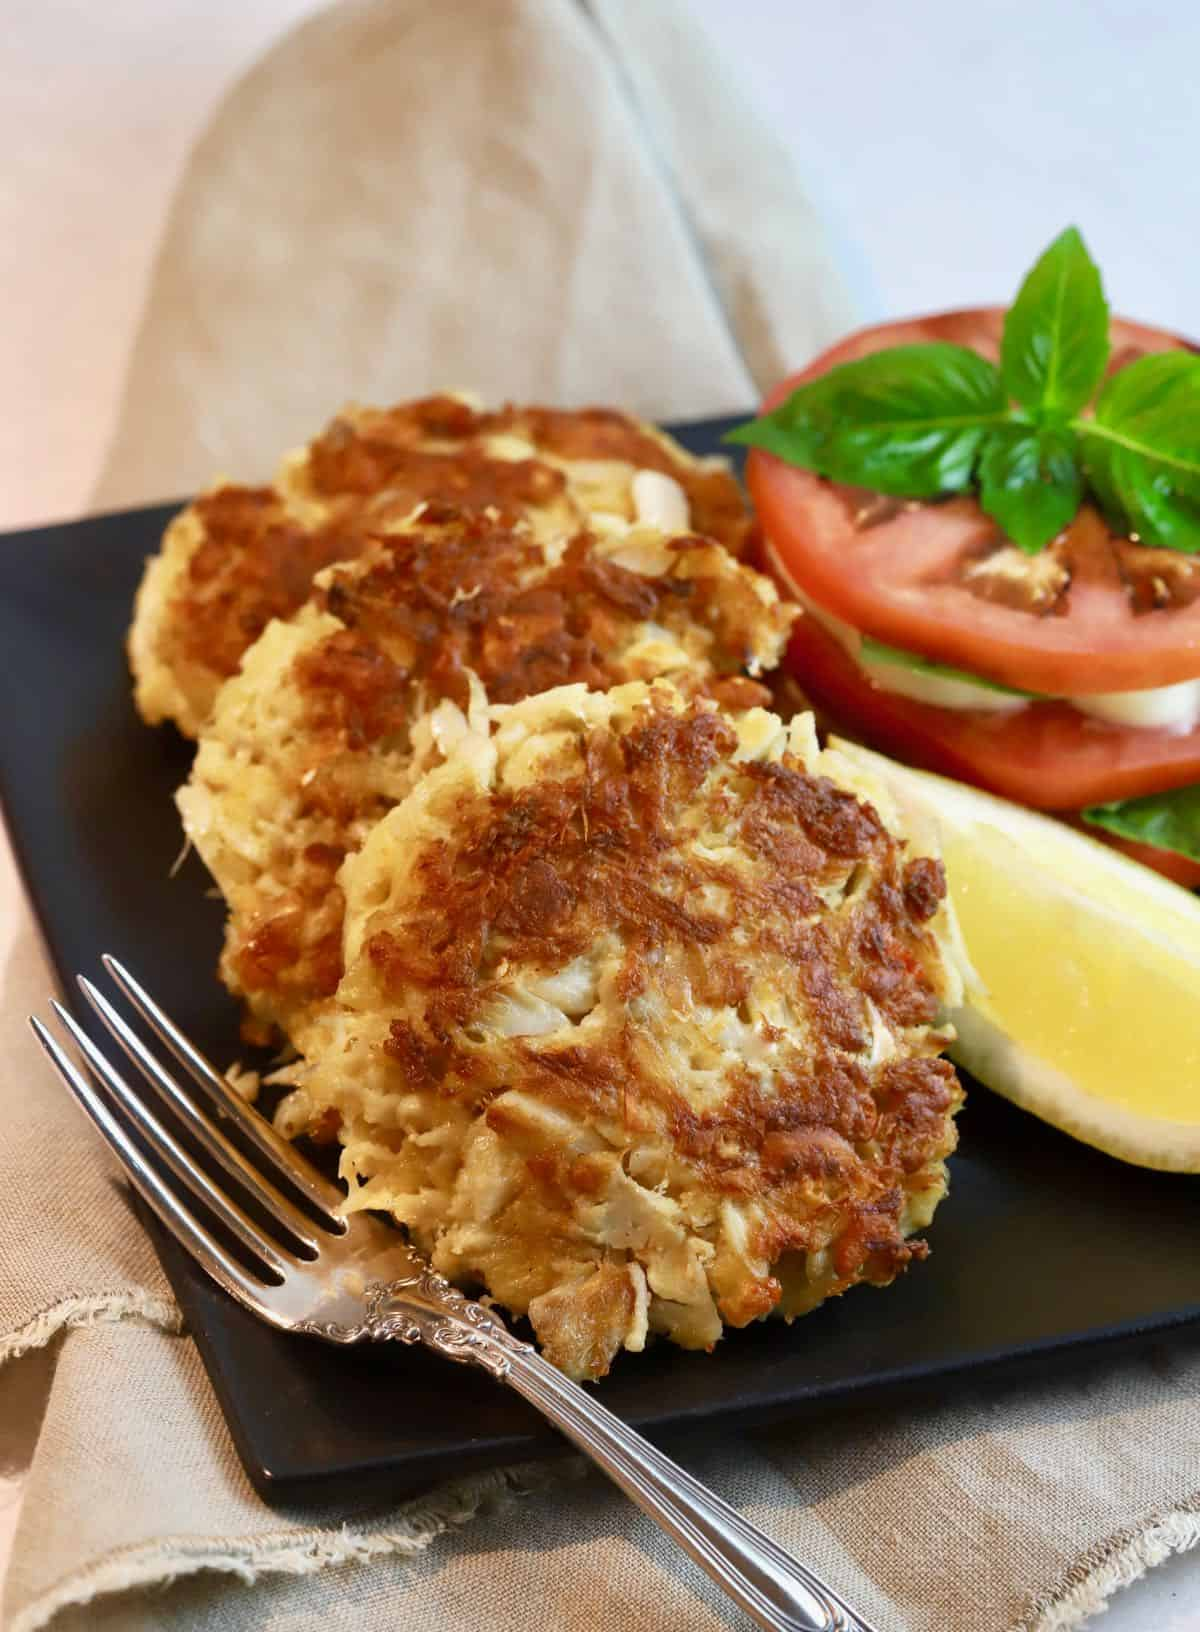 Three crab cakes on a plate with a slice of lemon.